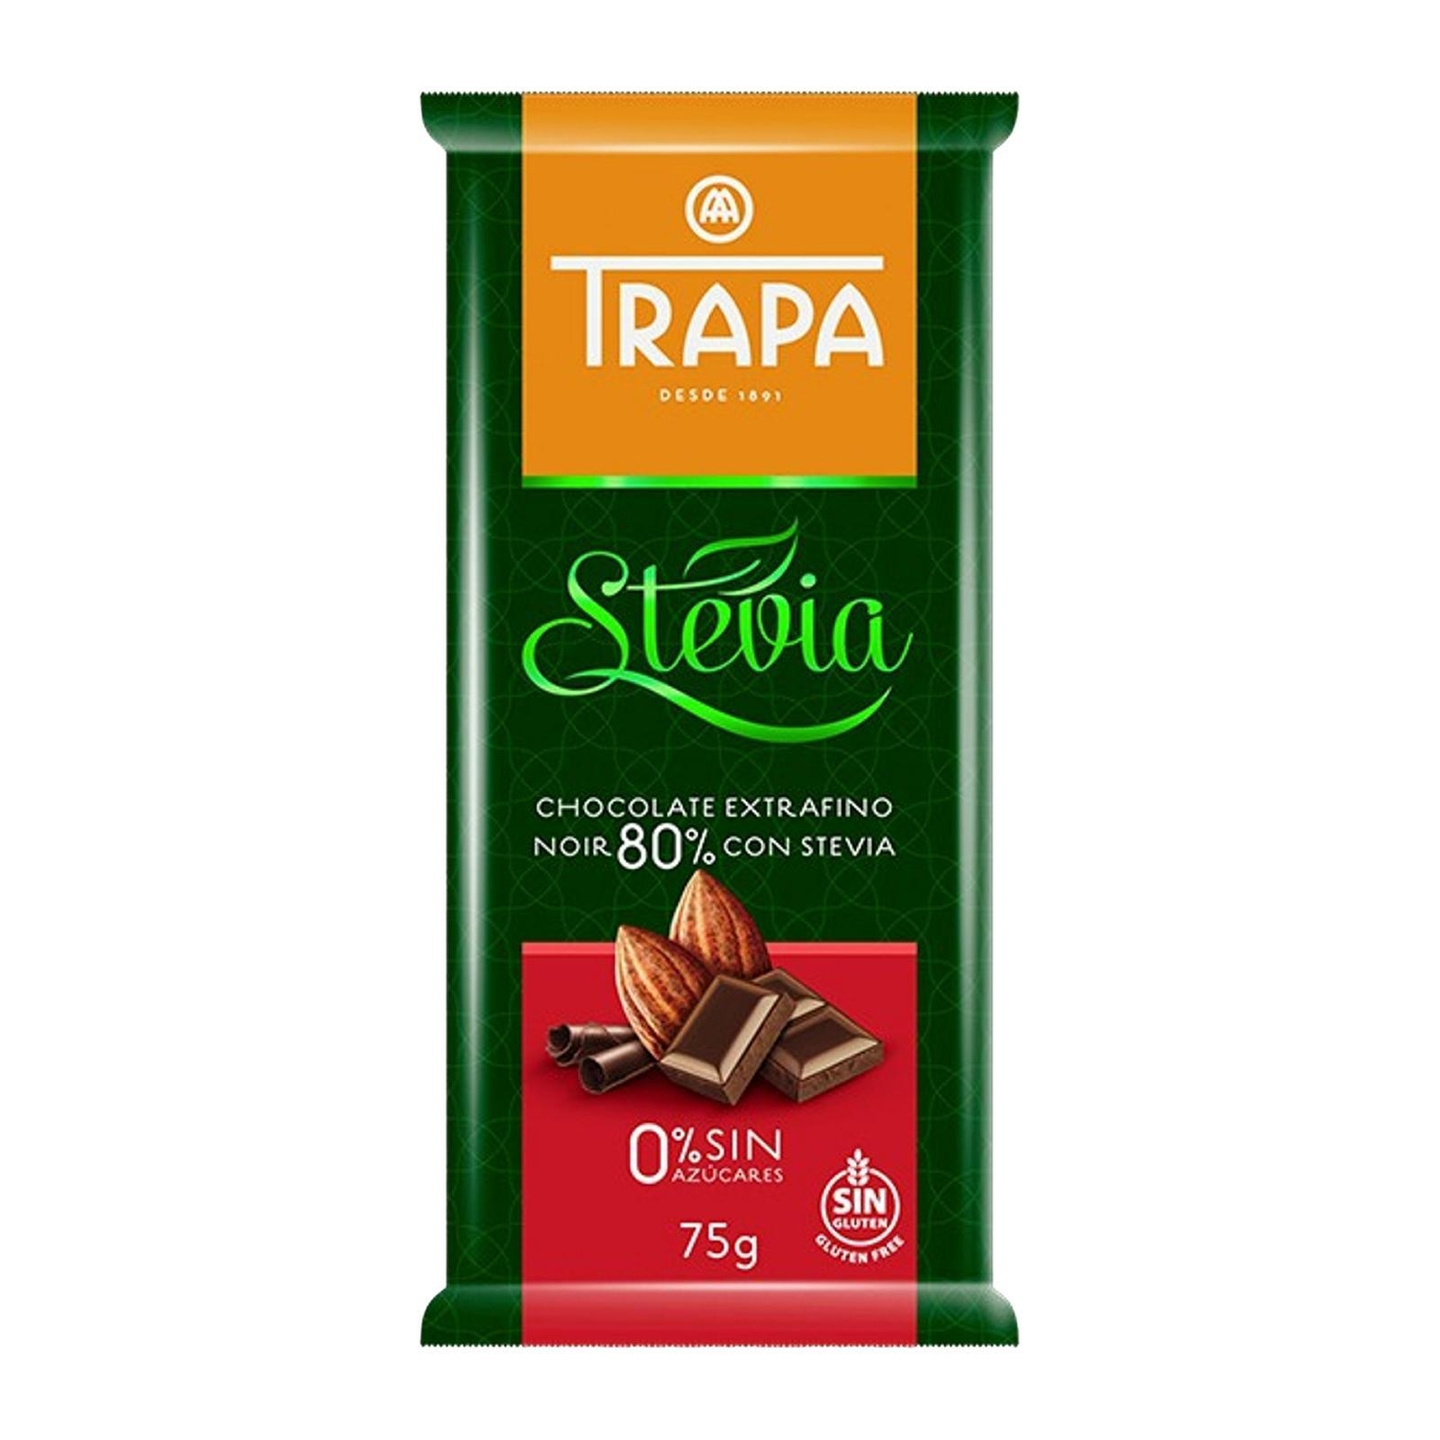 Trapa Sugar Free Dark Chocolate 80 with Stevia - Gluten